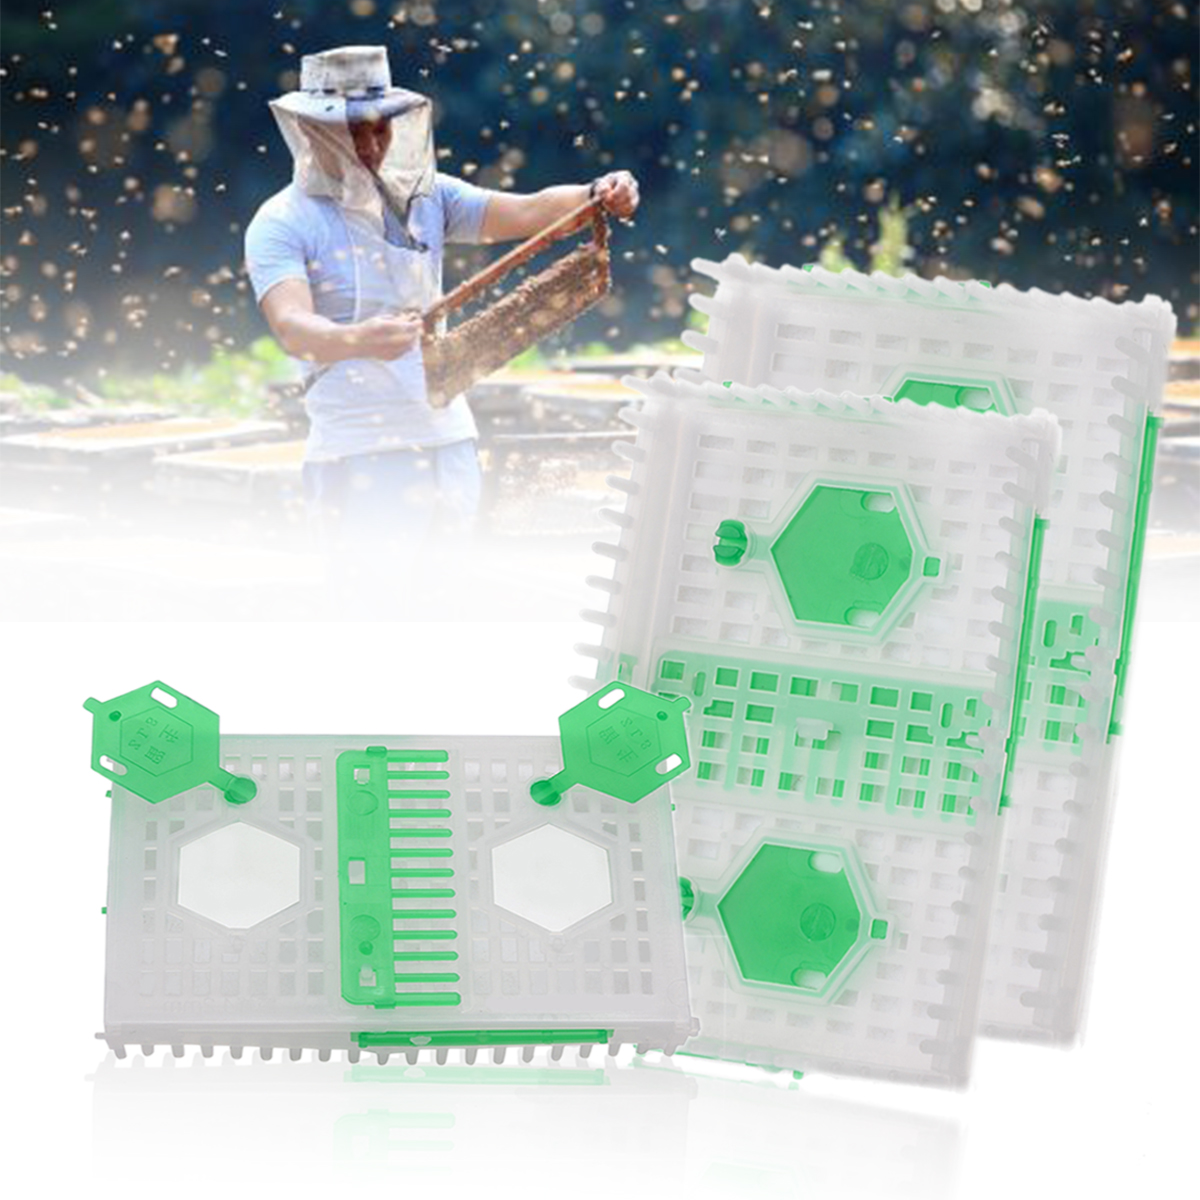 1pc Beekeeping Queen Cage Plastic Bee Hive Box Needle Cages Beekeeper Beekeeping Appliances Equipment Tool